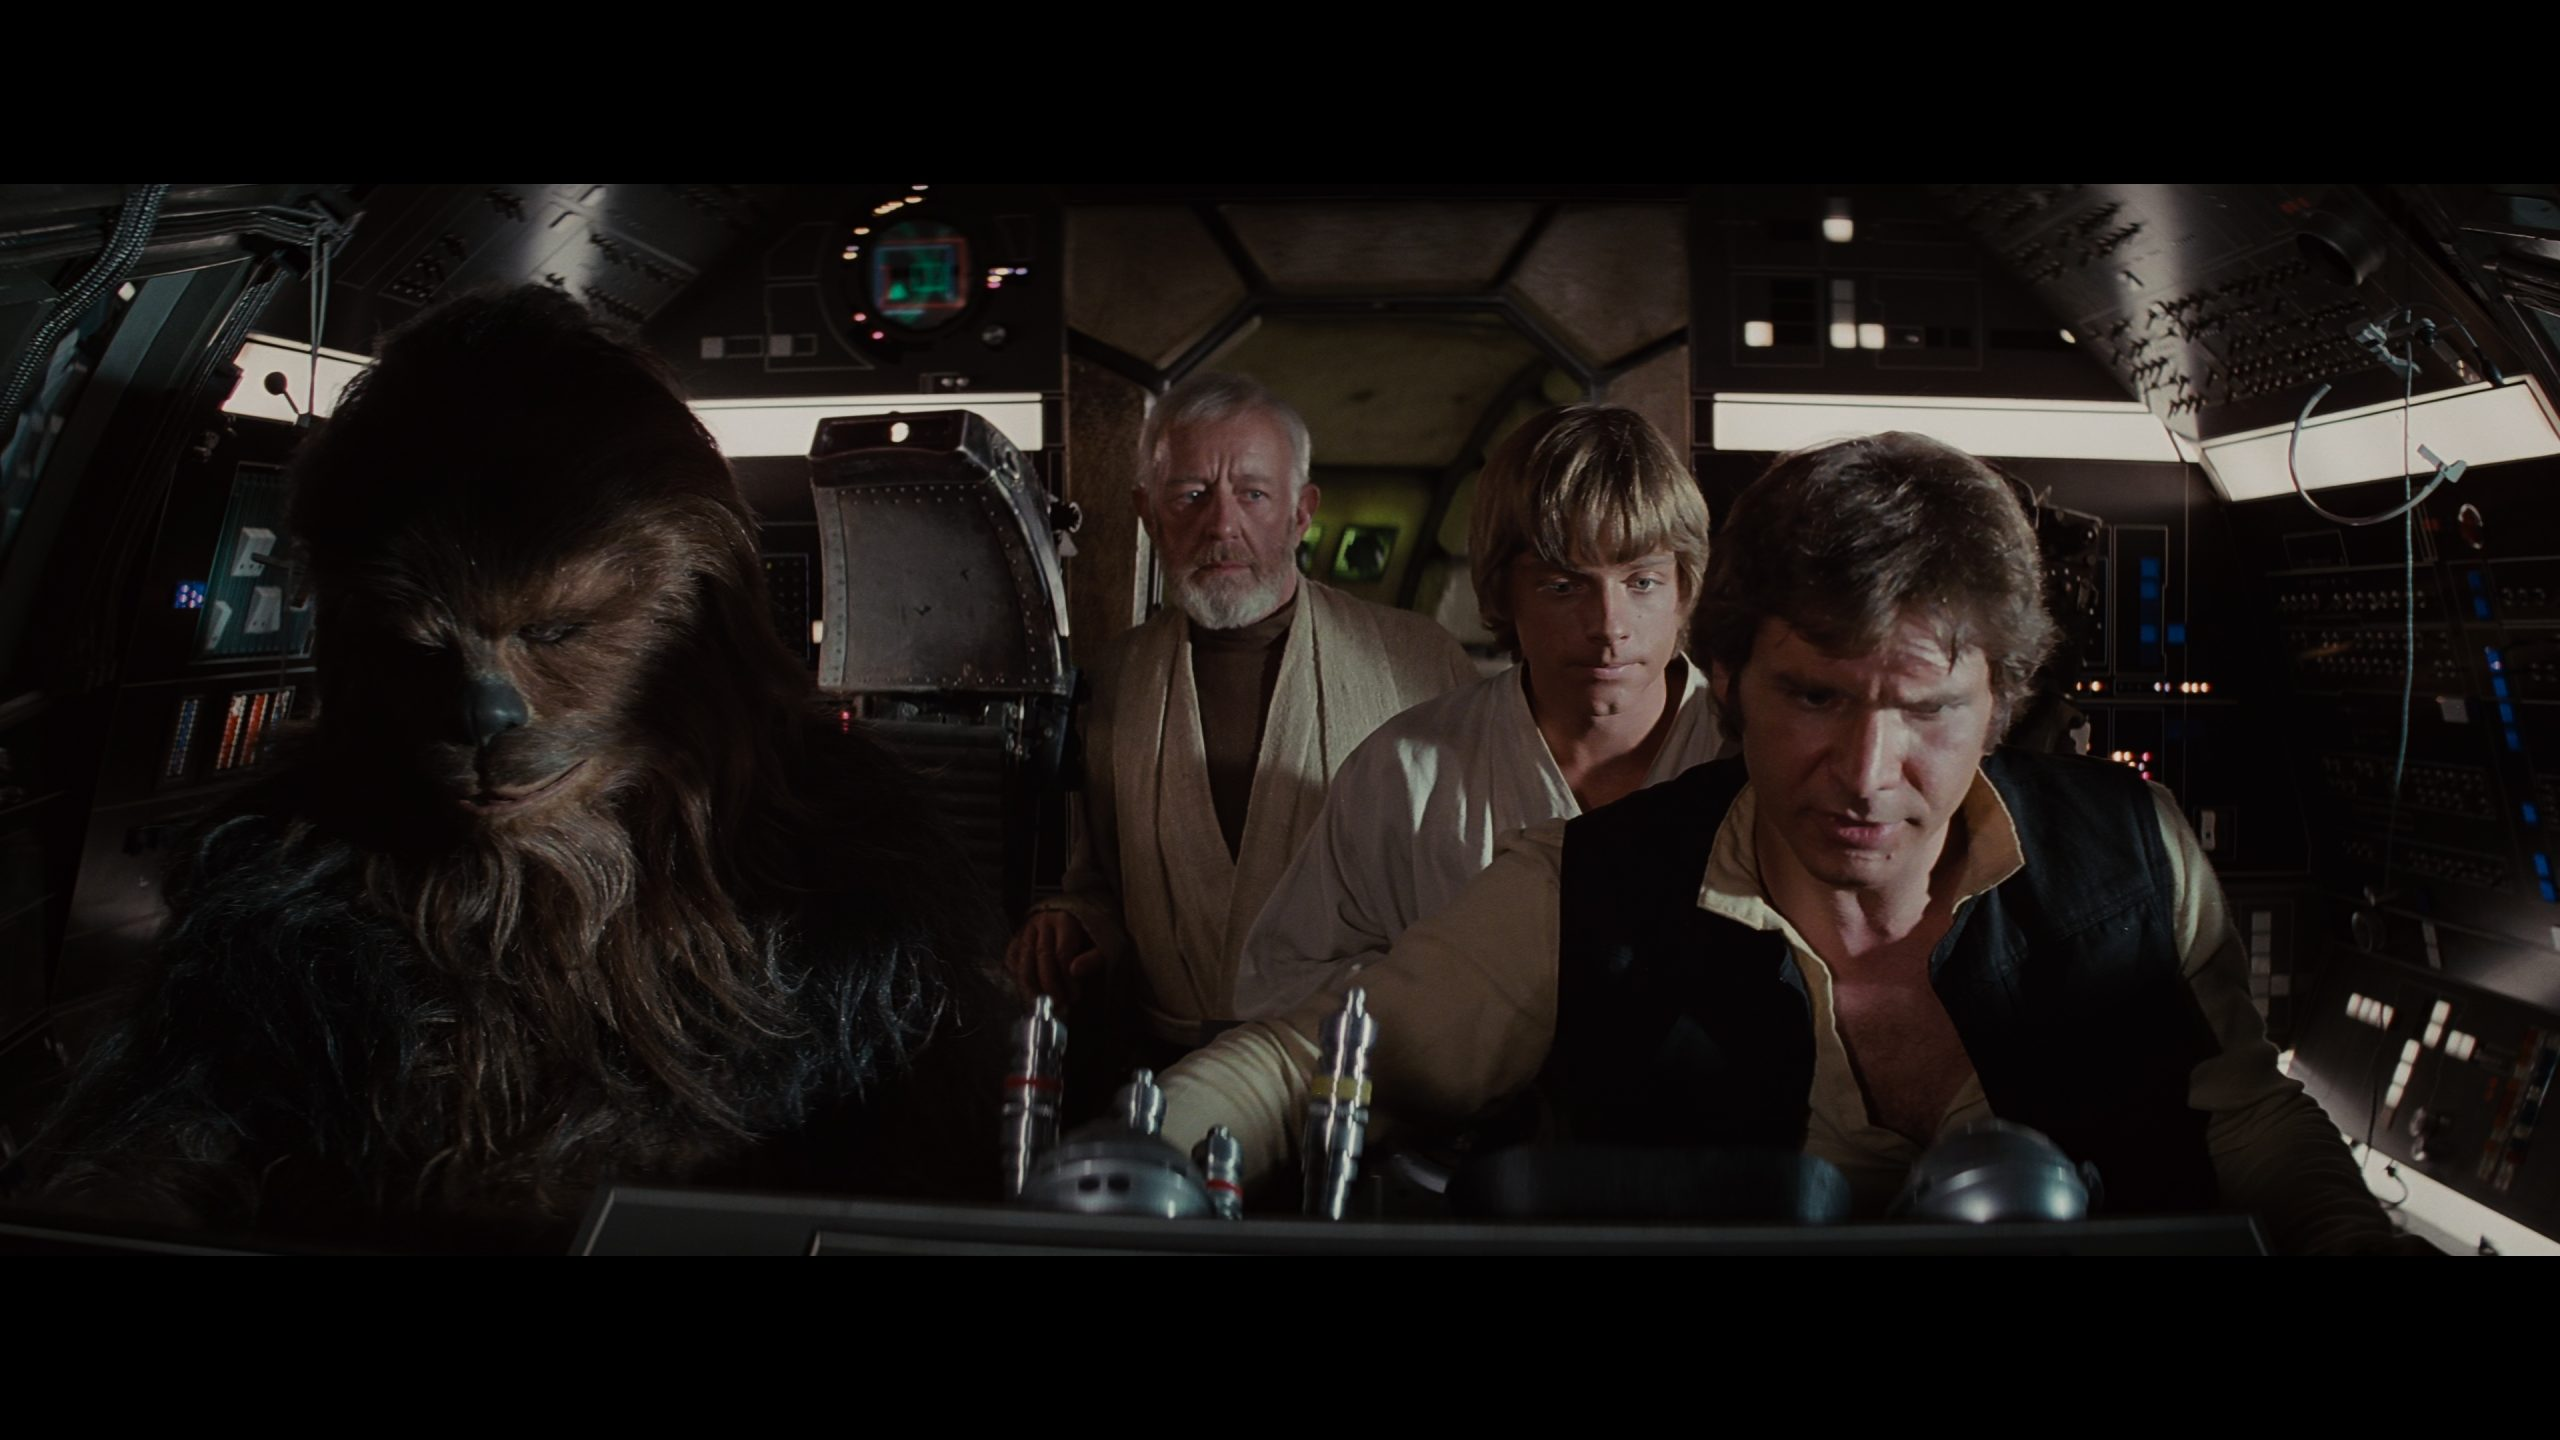 Star Wars Episode Iv A New Hope 4k Uhd Review